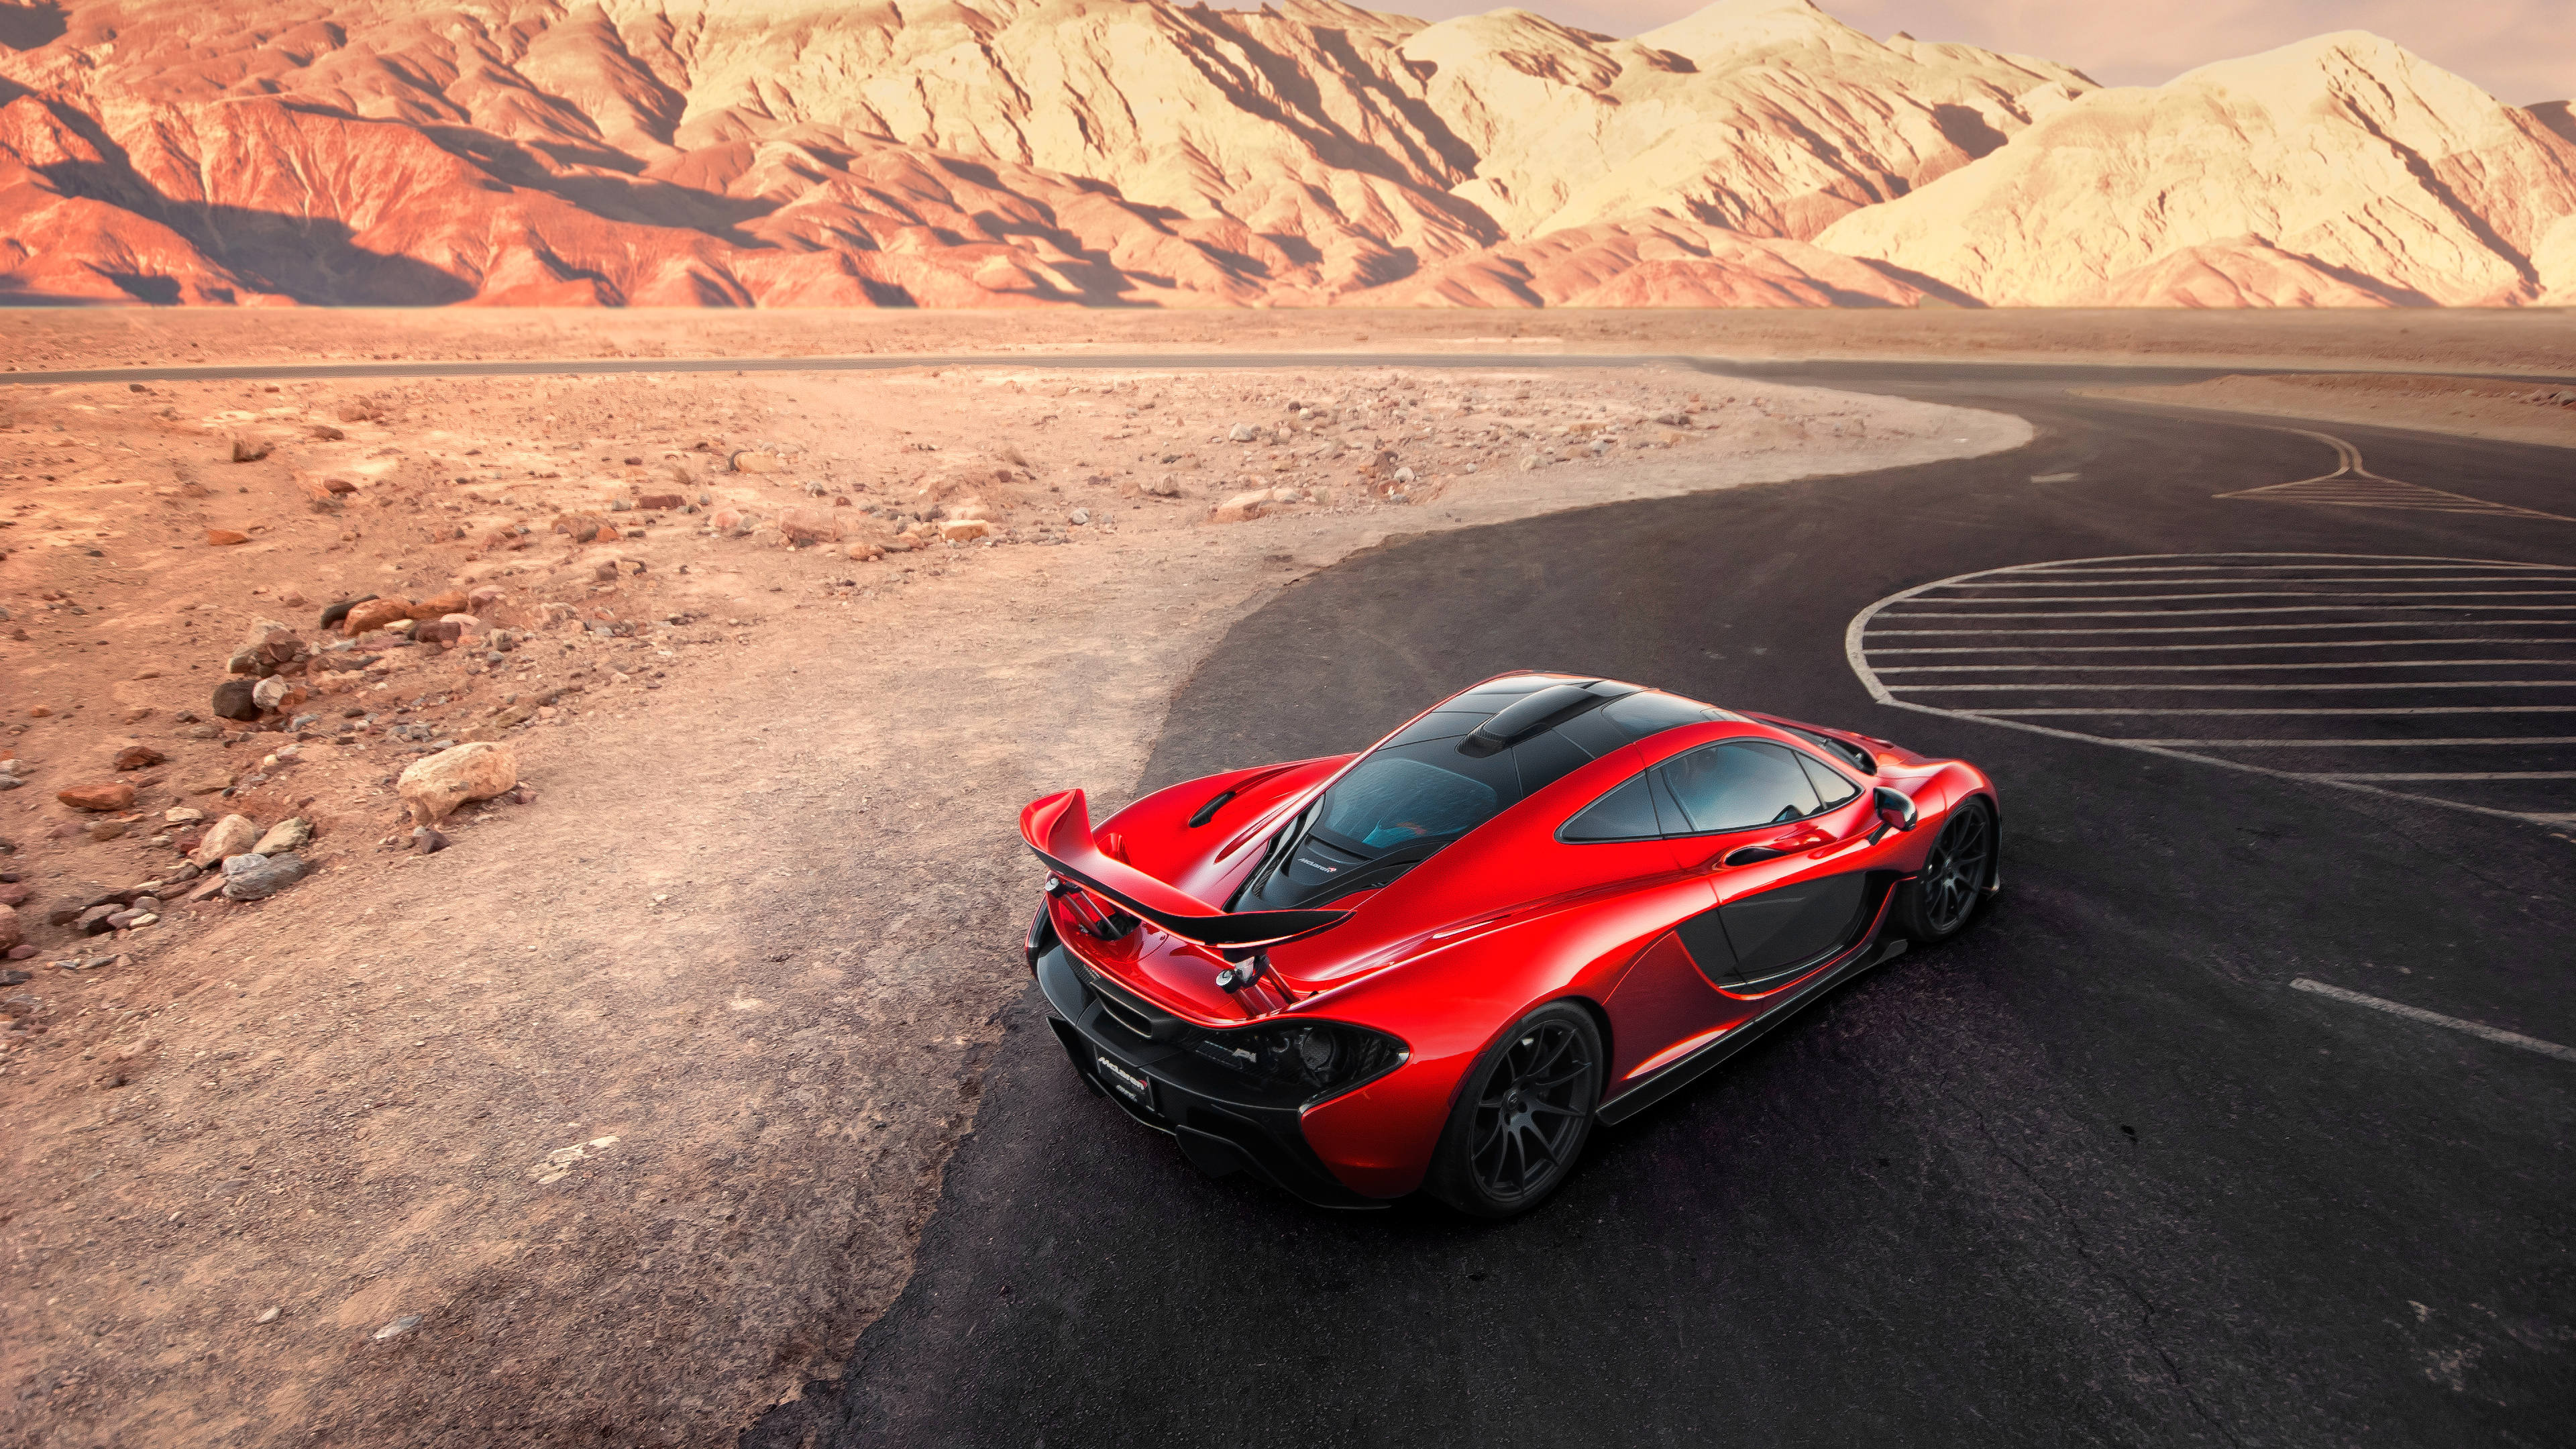 Car Wallpapers Backgrounds Hd: McLaren P1 Death Valley Wallpaper